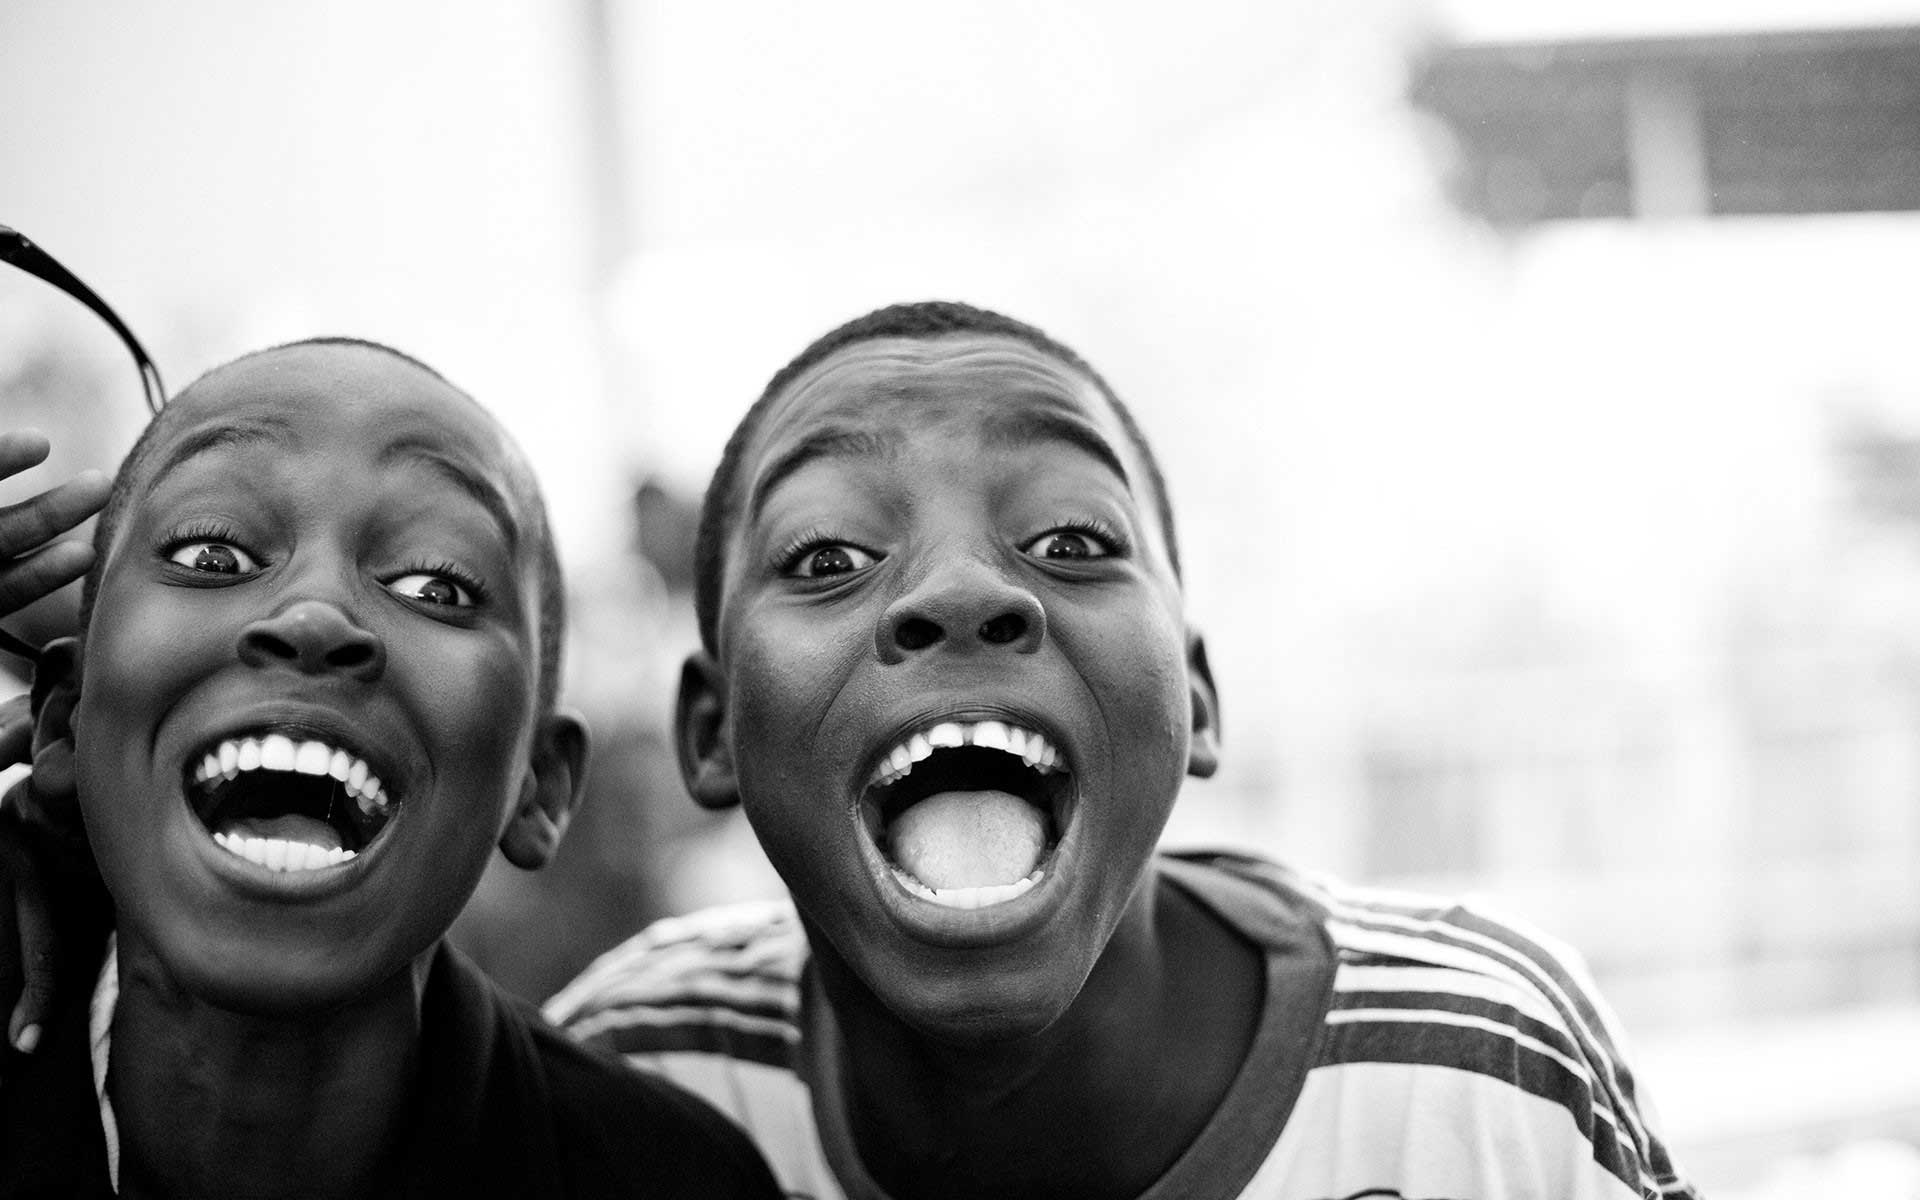 Two Haitian boys laughing together